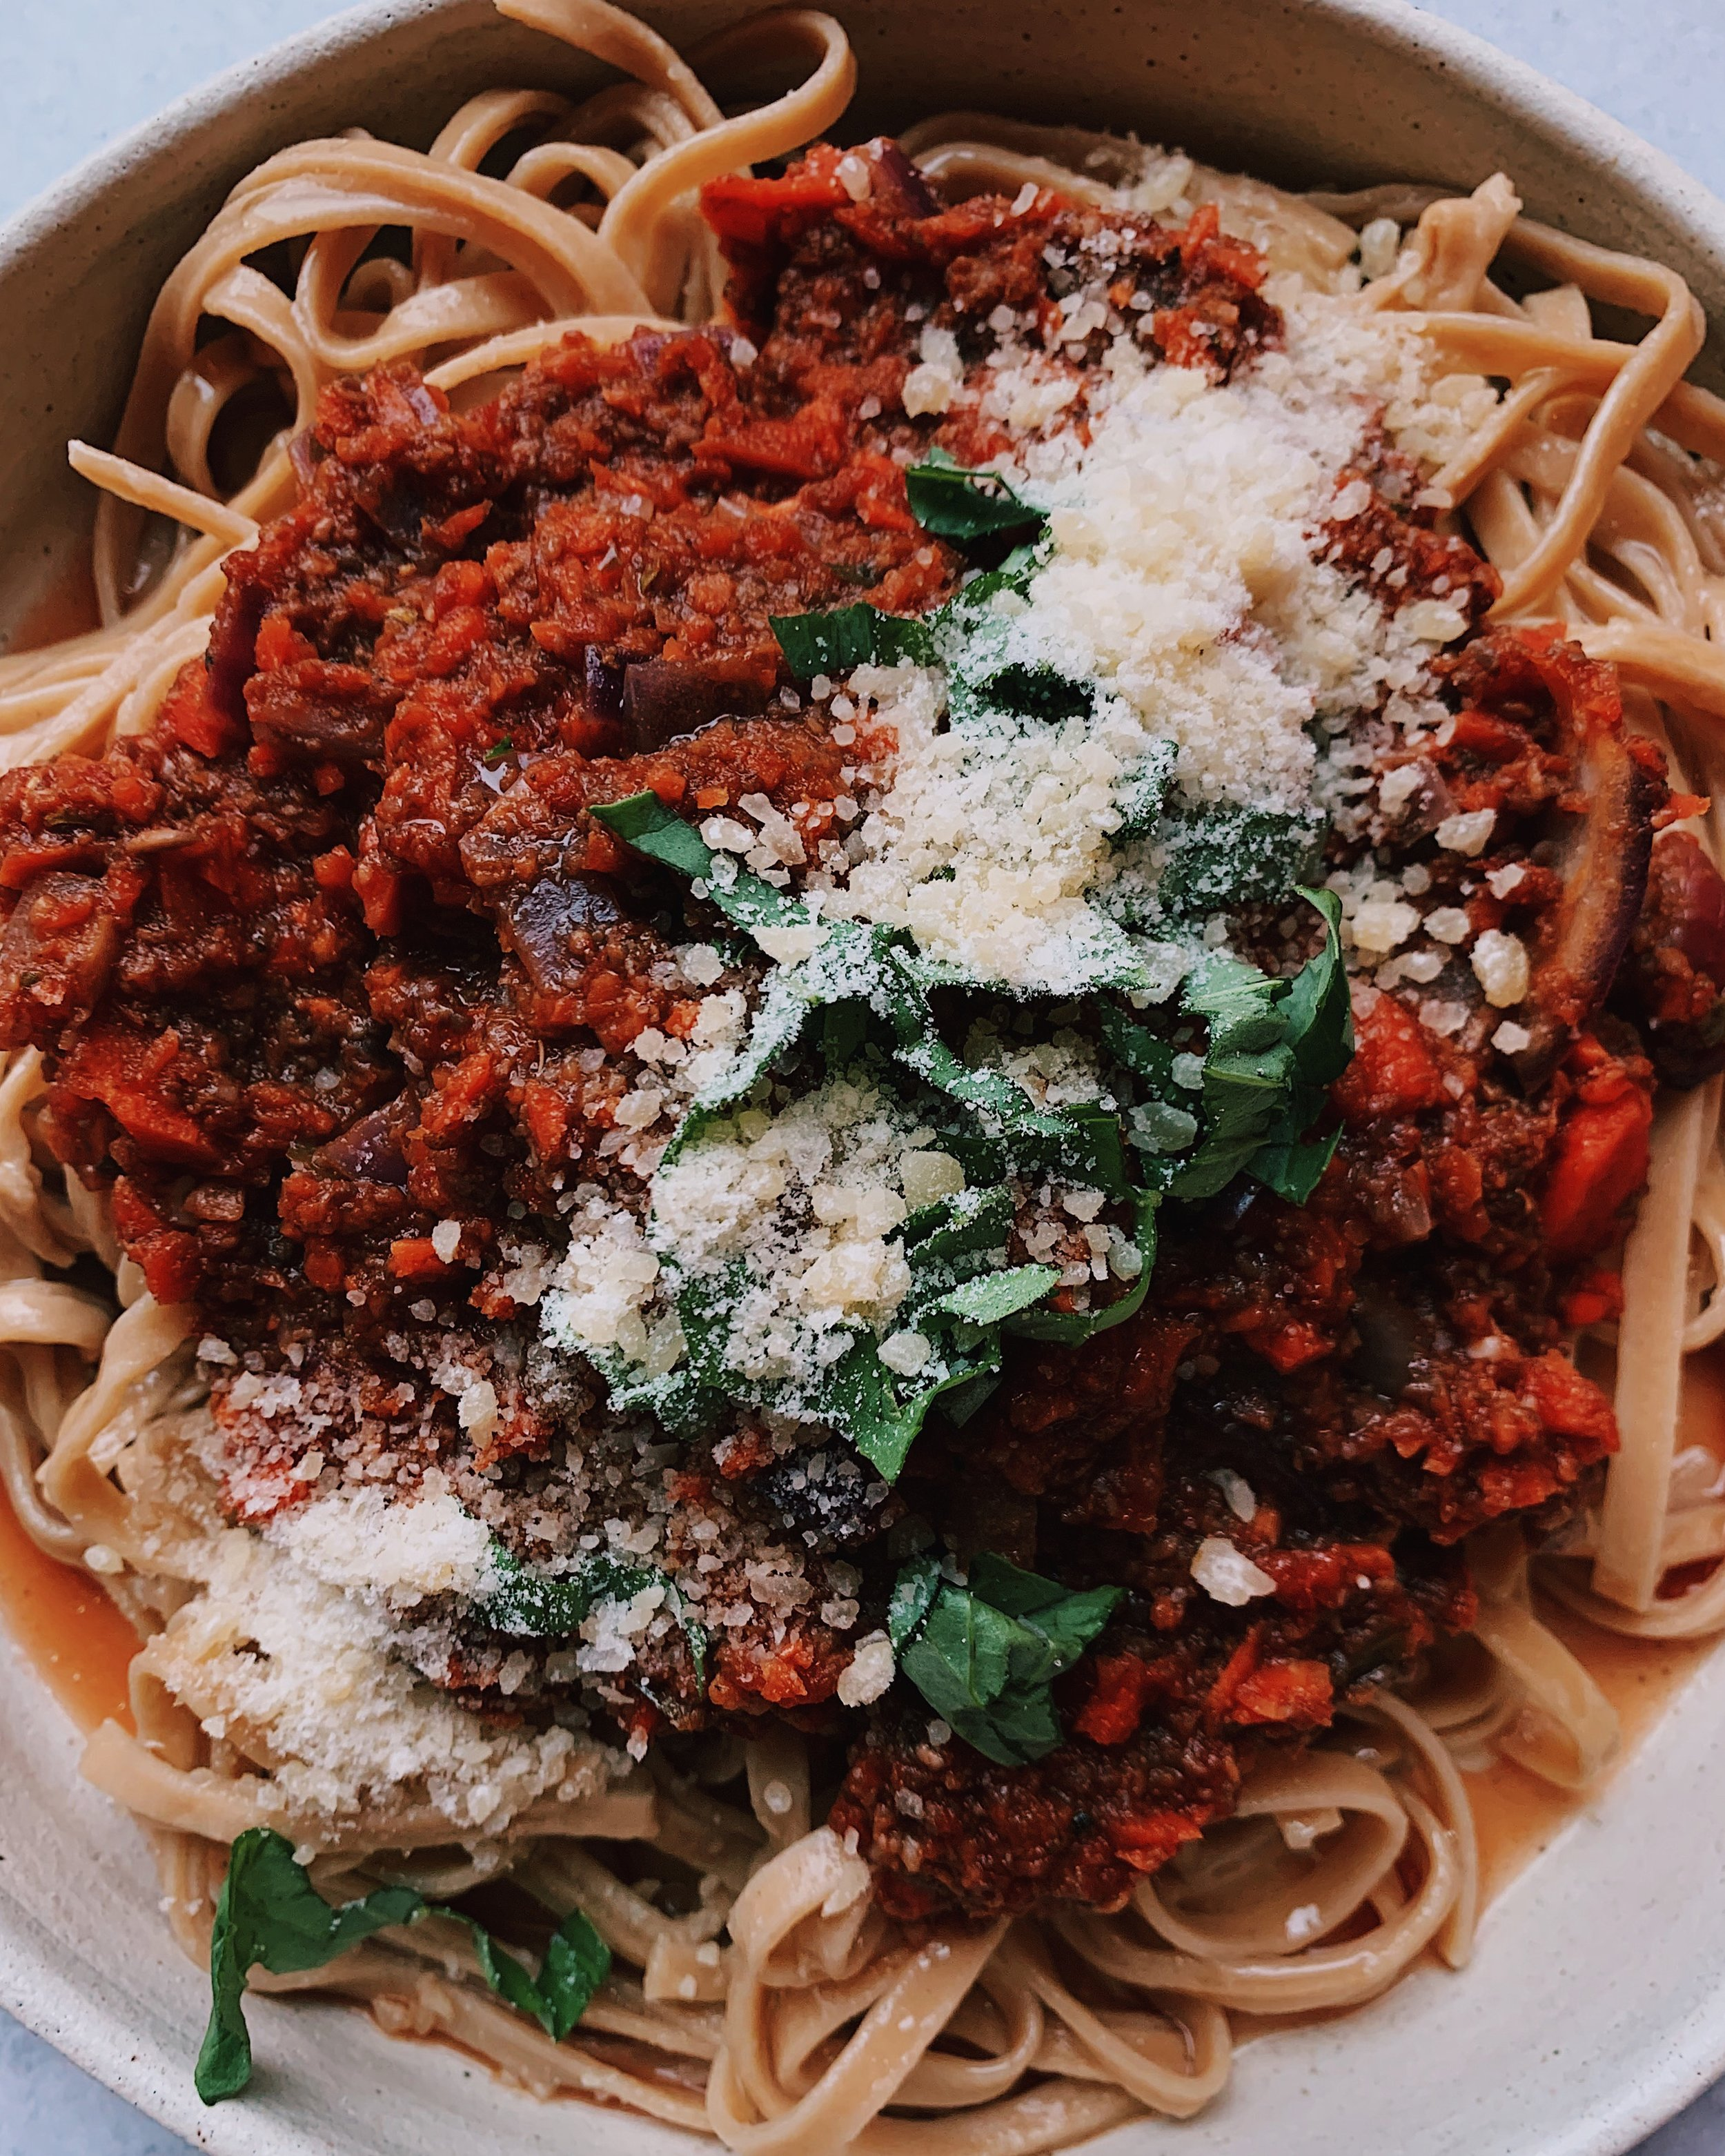 MUSHROOM BOLOGNESE SAUCE - INGREDIENTS1 container white mushrooms⠀3 carrots⠀3 garlic cloves, crushed⠀1 red onion, finely chopped ⠀1 tb olive oil (or oil of choice)2 tb Italian seasoning (or 1 tsp dried basil, 1 tsp oregano)⠀1 jar pasta sauce of choice (I used Raos Homemade)salt/pepper to taste⠀pasta of choice (I used @taste_republic New cauliflower pasta) or zucchini noodles⠀⠀